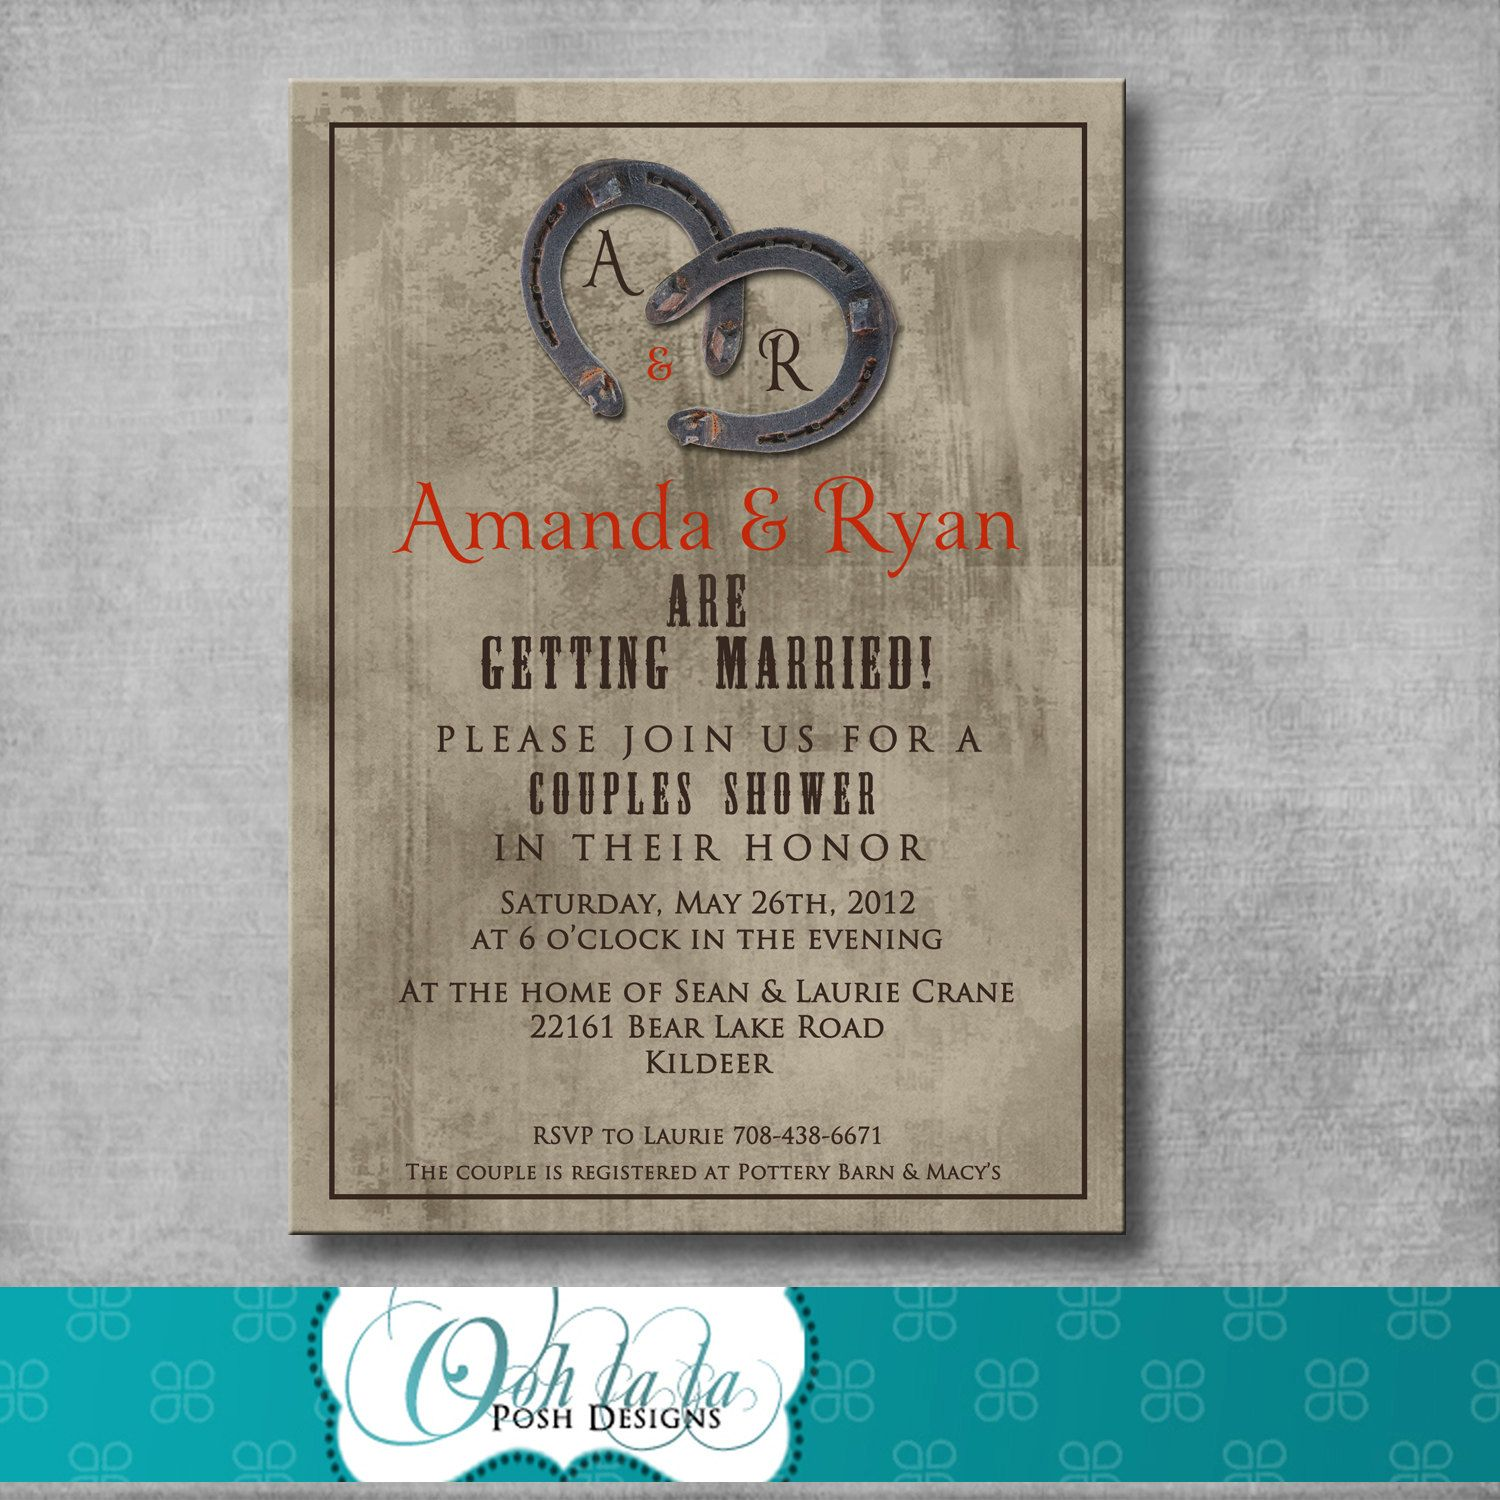 how to address couples on wedding invitations%0A Rustic Charm Couples Shower Invitation DIY by OohlalaPoshDesigns